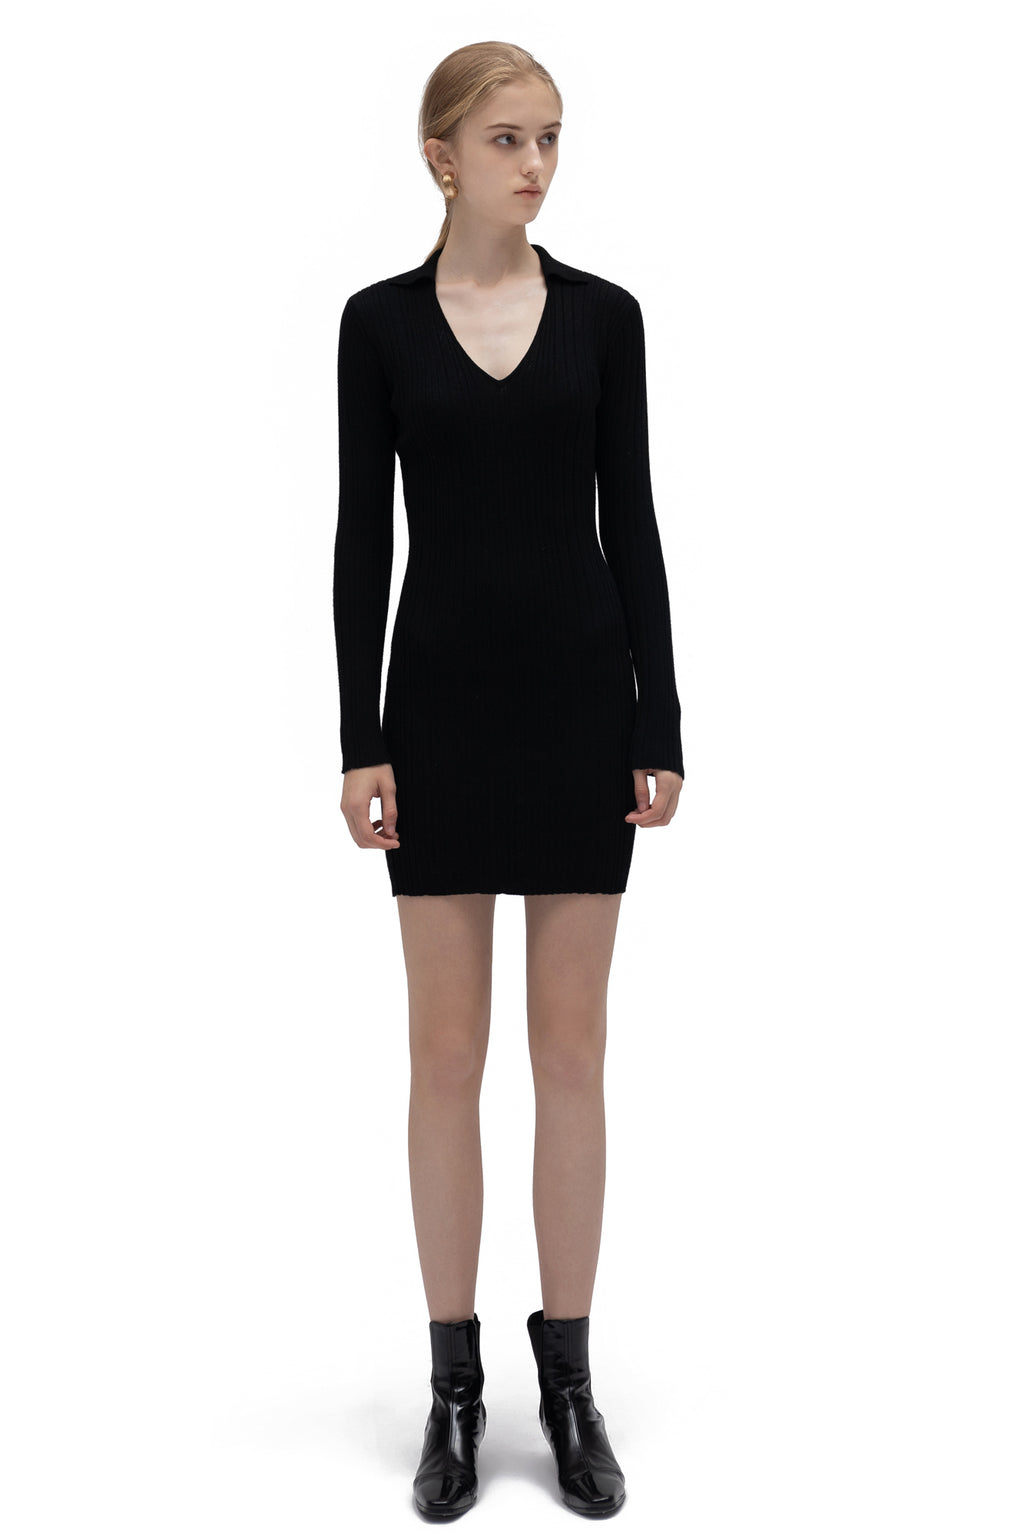 YUEL XIANG deep V knit dress